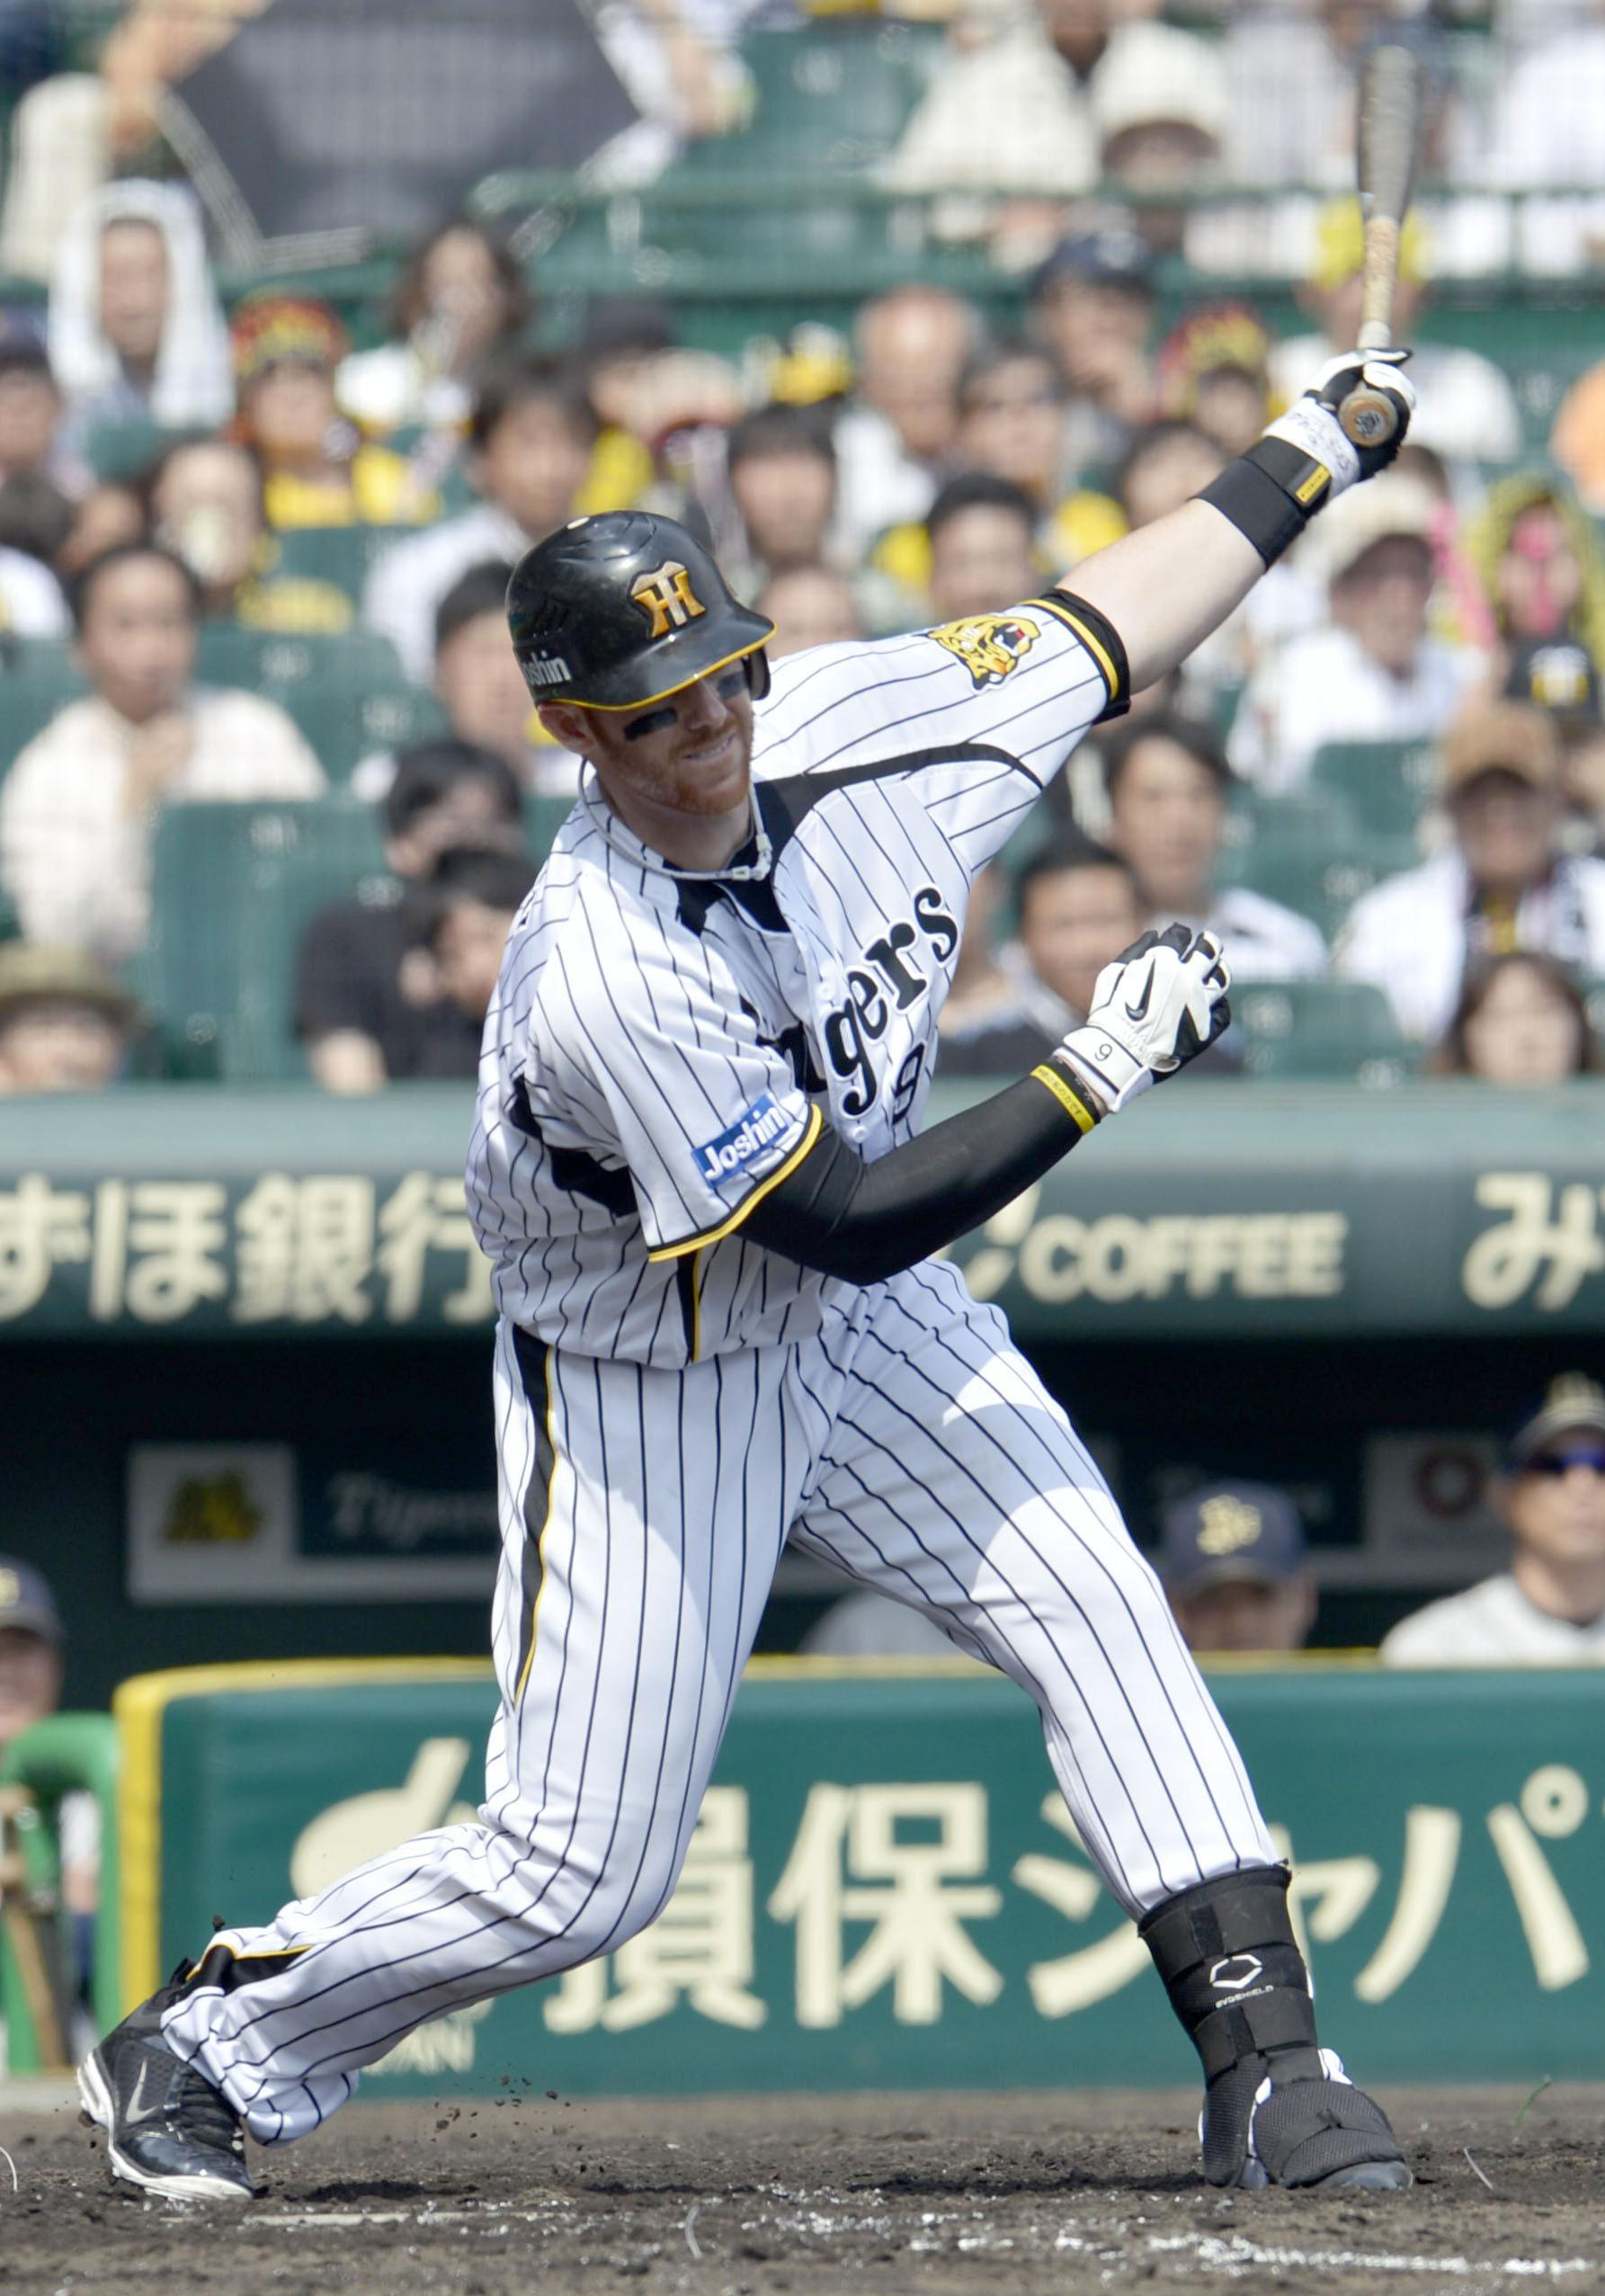 Say that again: The language barrier is something players such as Hanshin's Matt Murton have to navigate in Japan. | KYODO